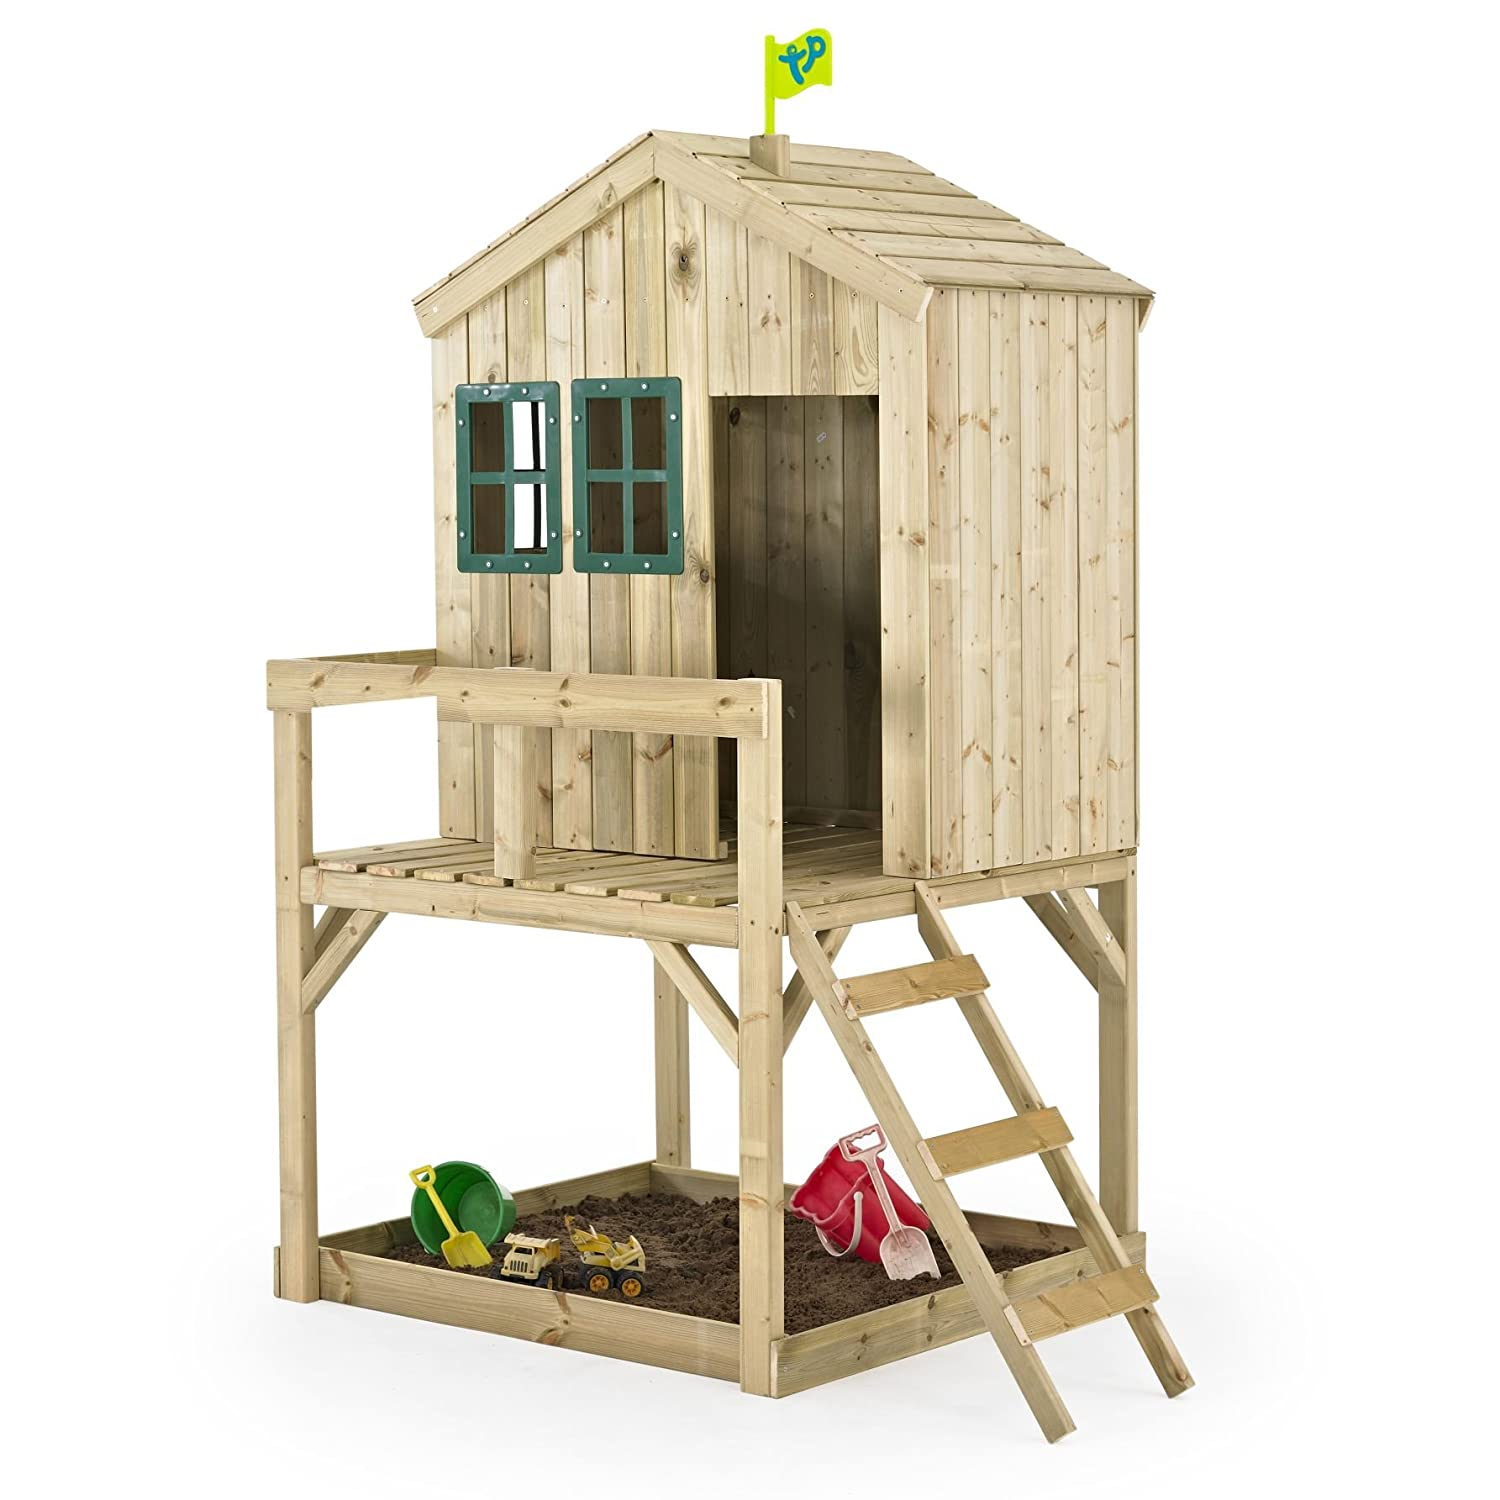 Casita Infantil de Madera Outdoor Toys Forest Cottage: Amazon.es: Juguetes y juegos